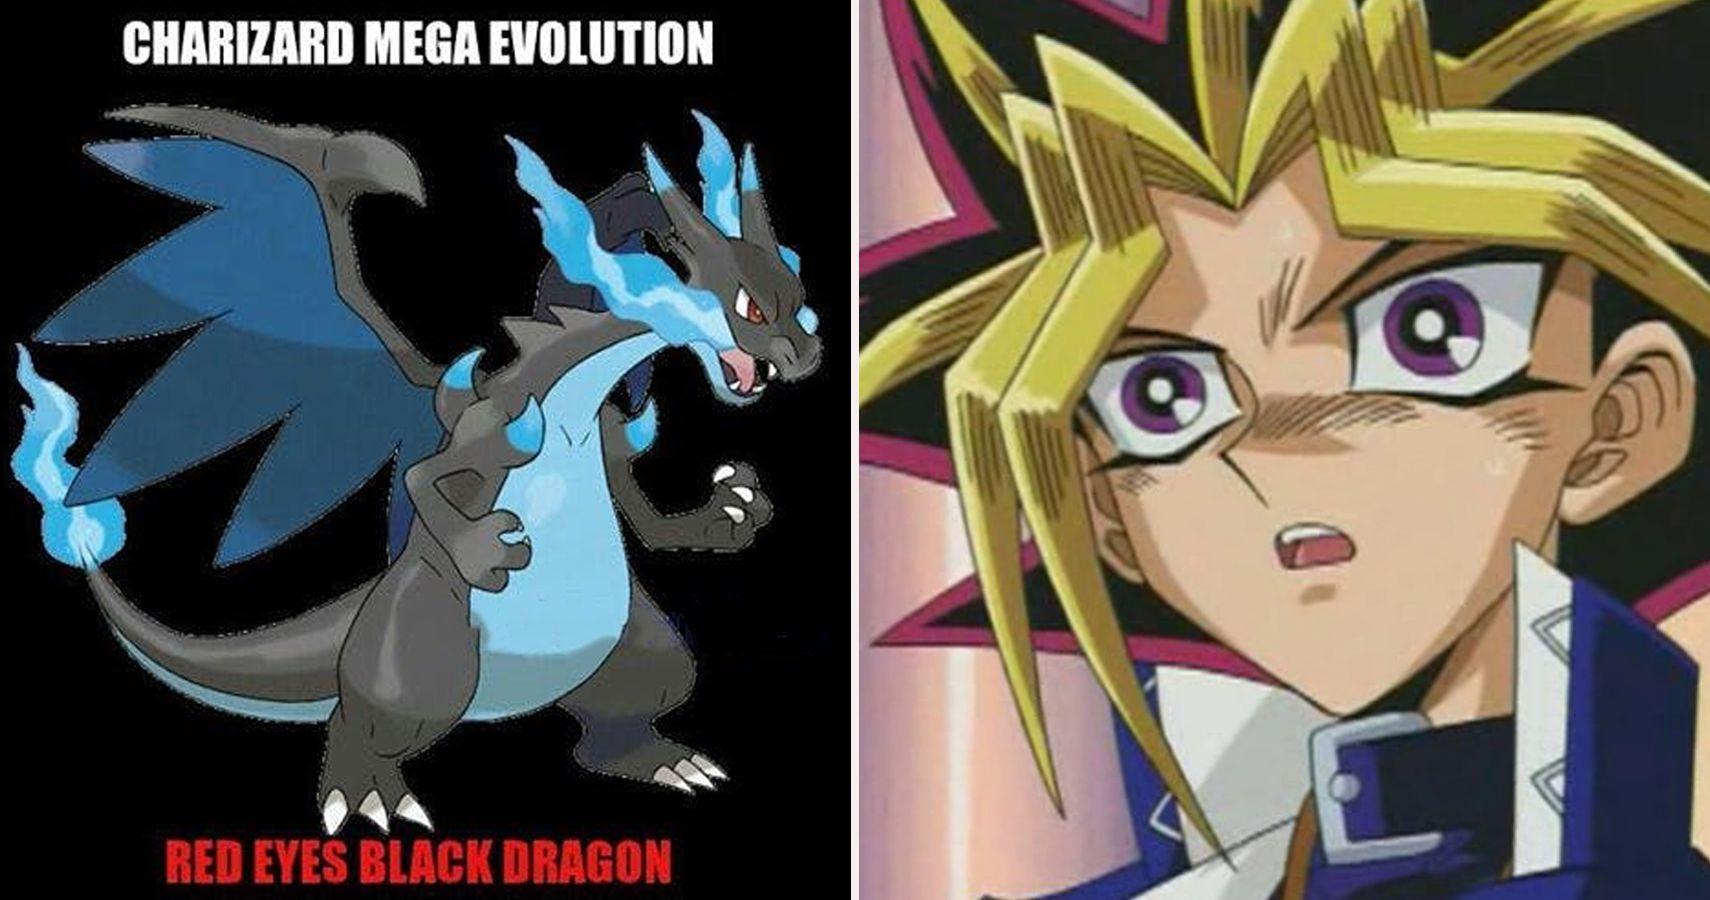 Time To Duel 25 Pokemon Vs Yu Gi Oh Memes That Leave Us Laughing